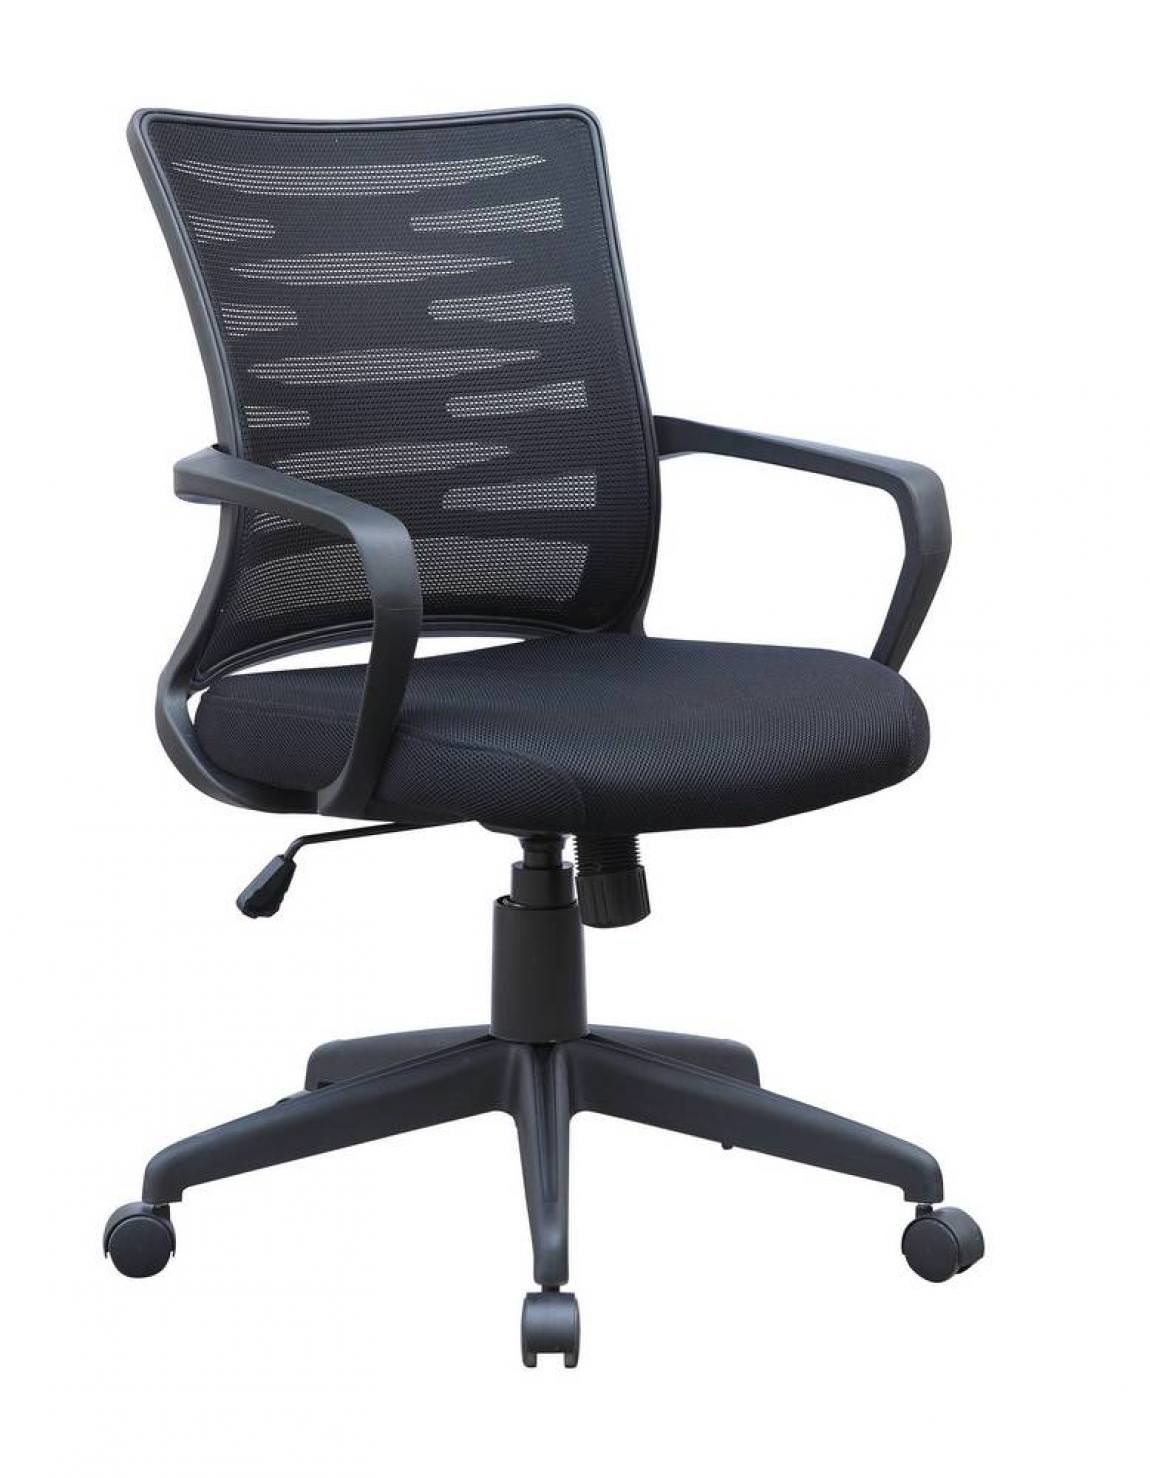 mesh back chairs for office short directors chair images of rolling with lumbar support